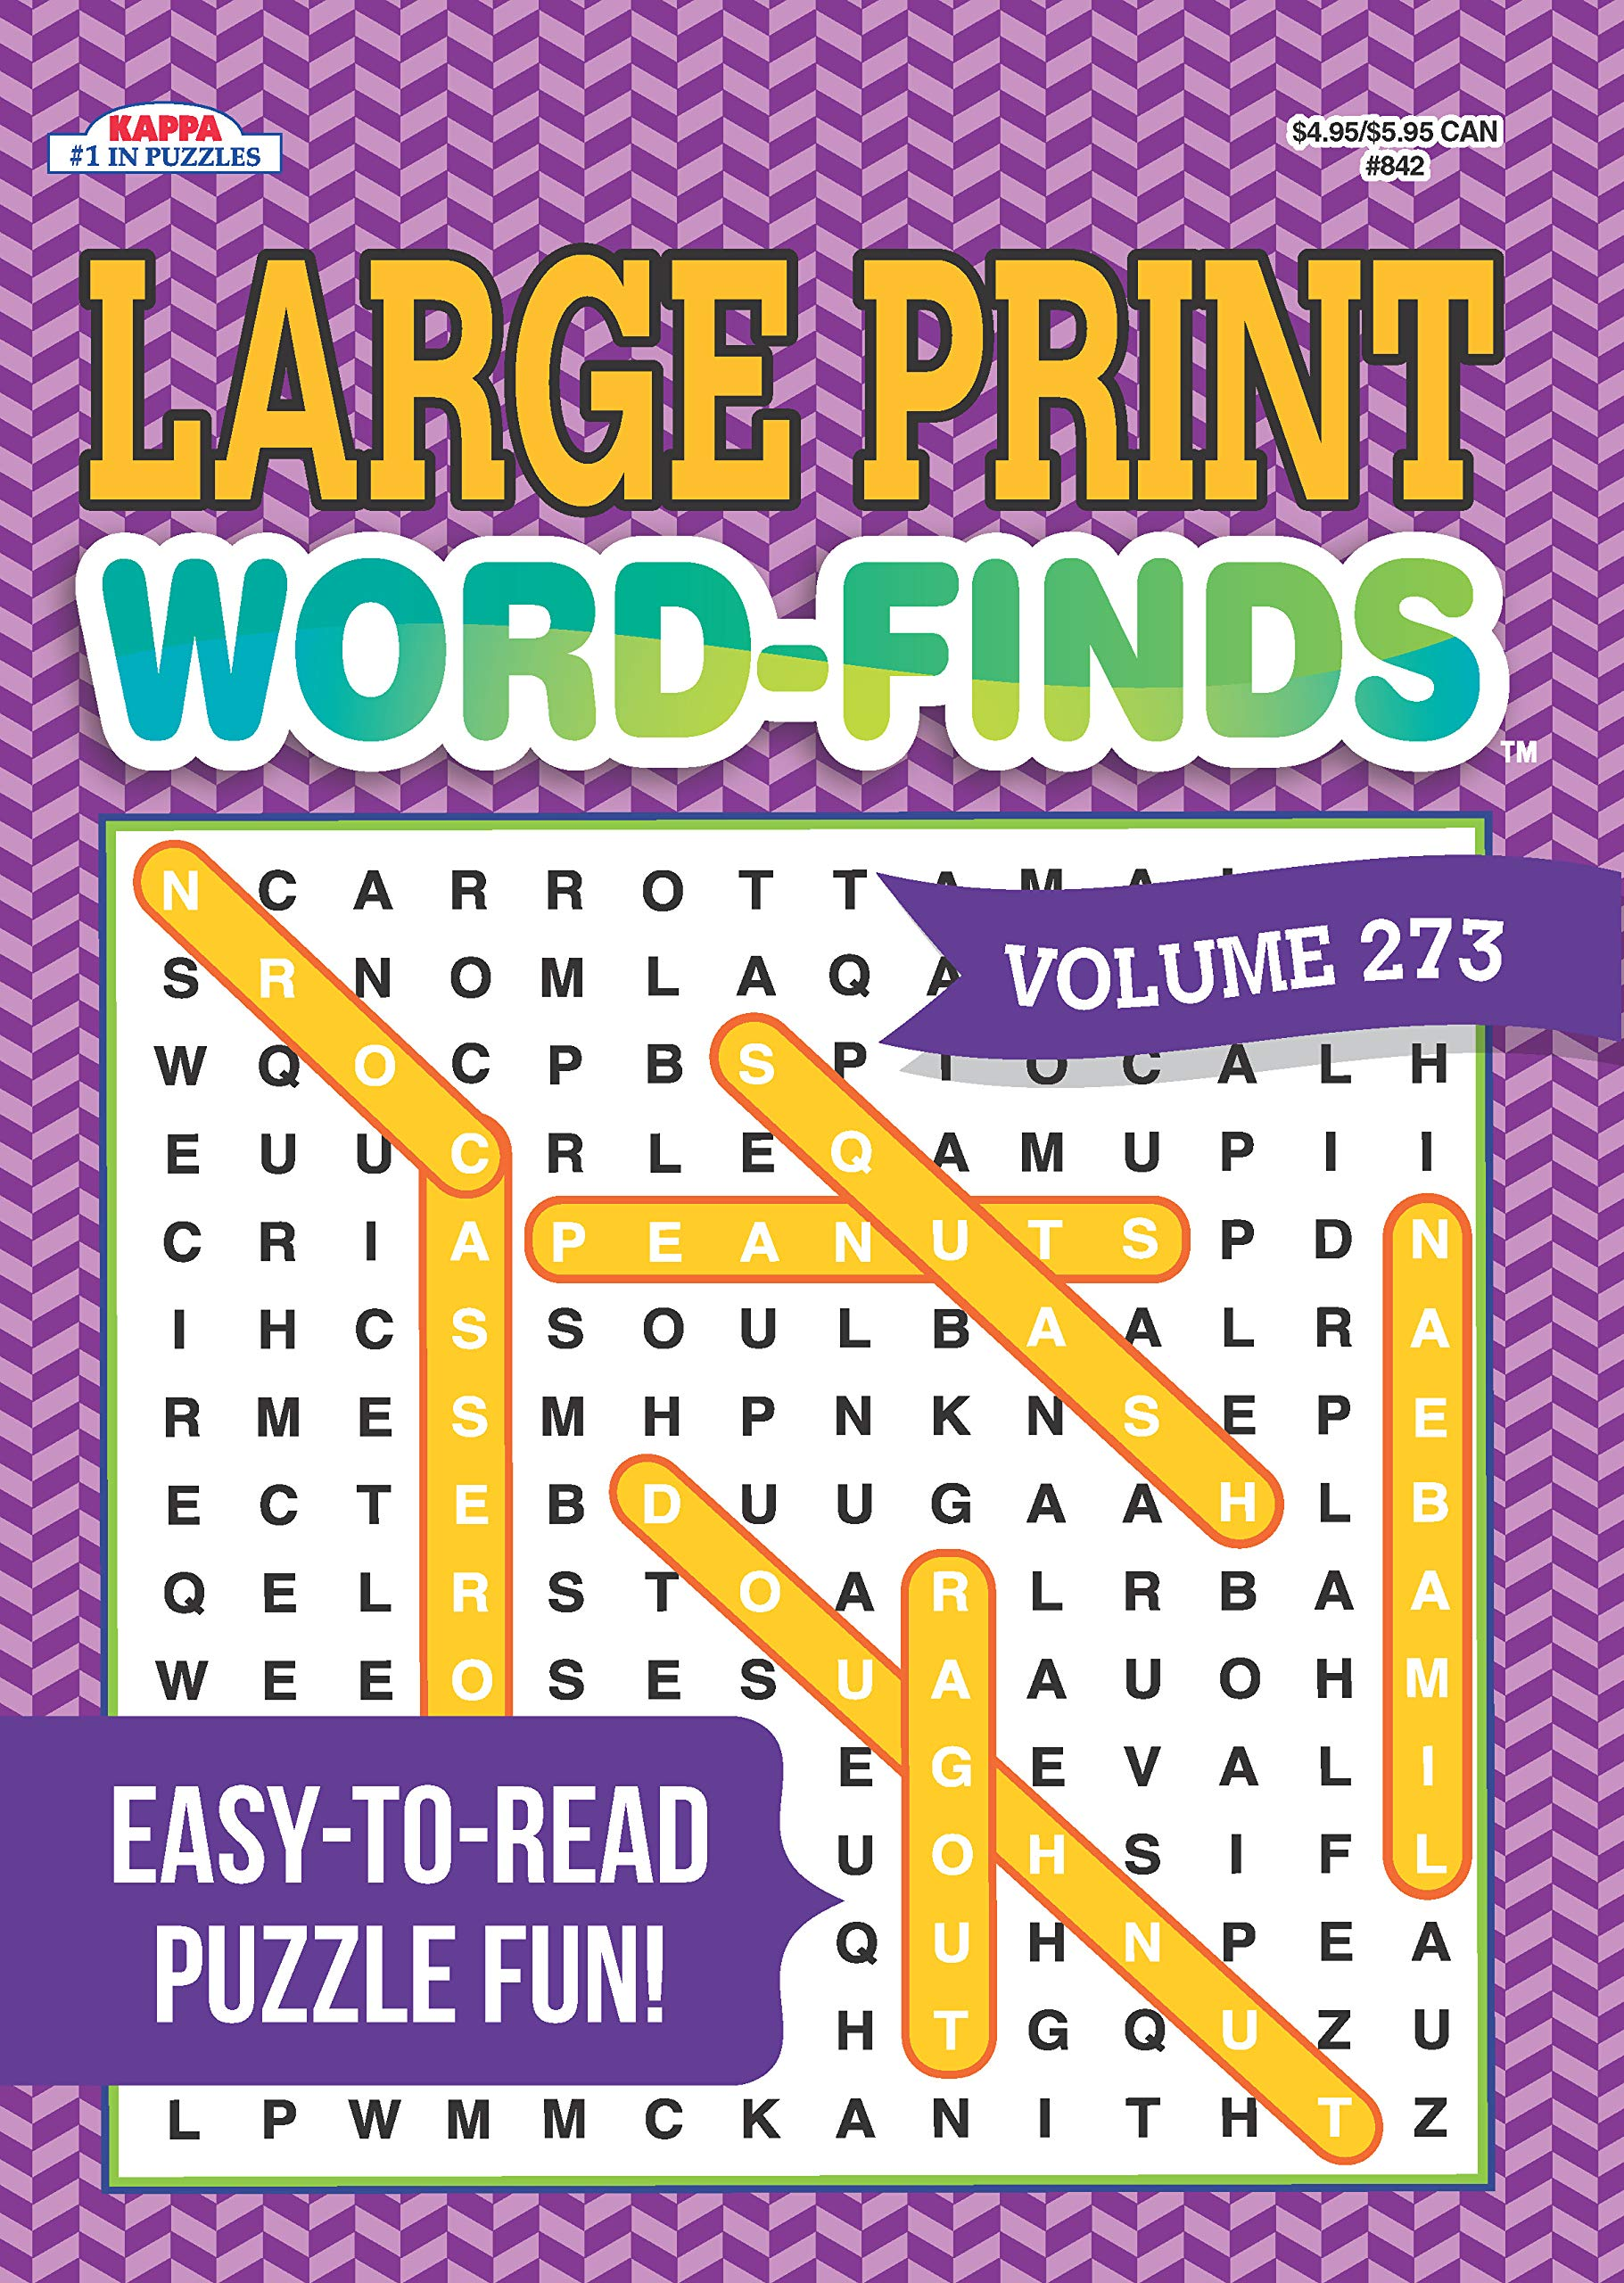 - Large Print Word-Finds Puzzle Book-Word Search Volume 273: Kappa